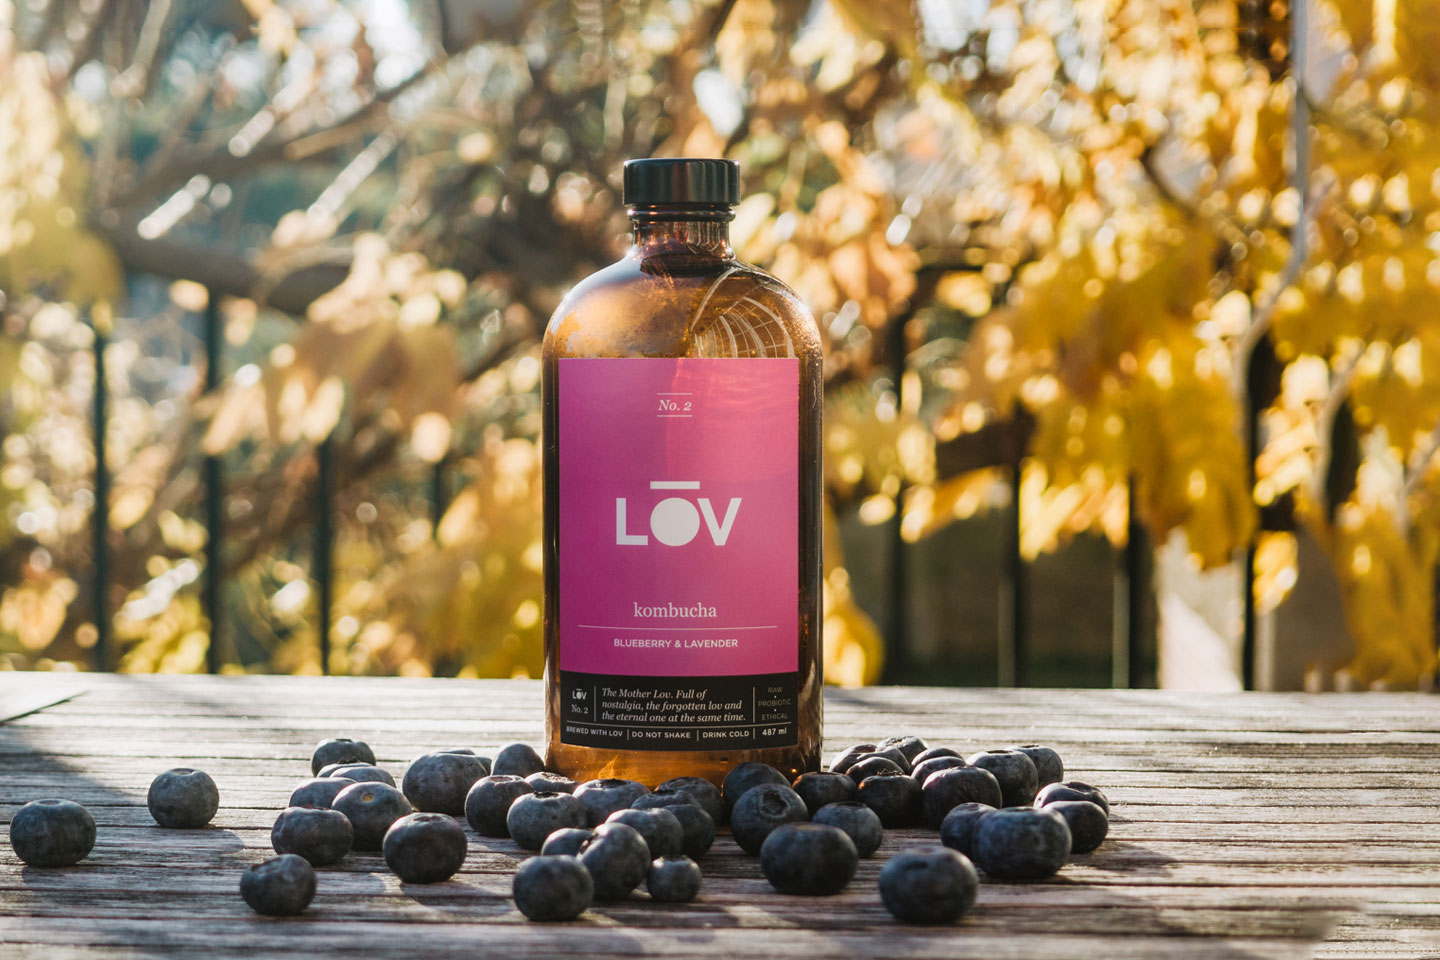 LŌV No. 2 – What's So Super About Blueberry?